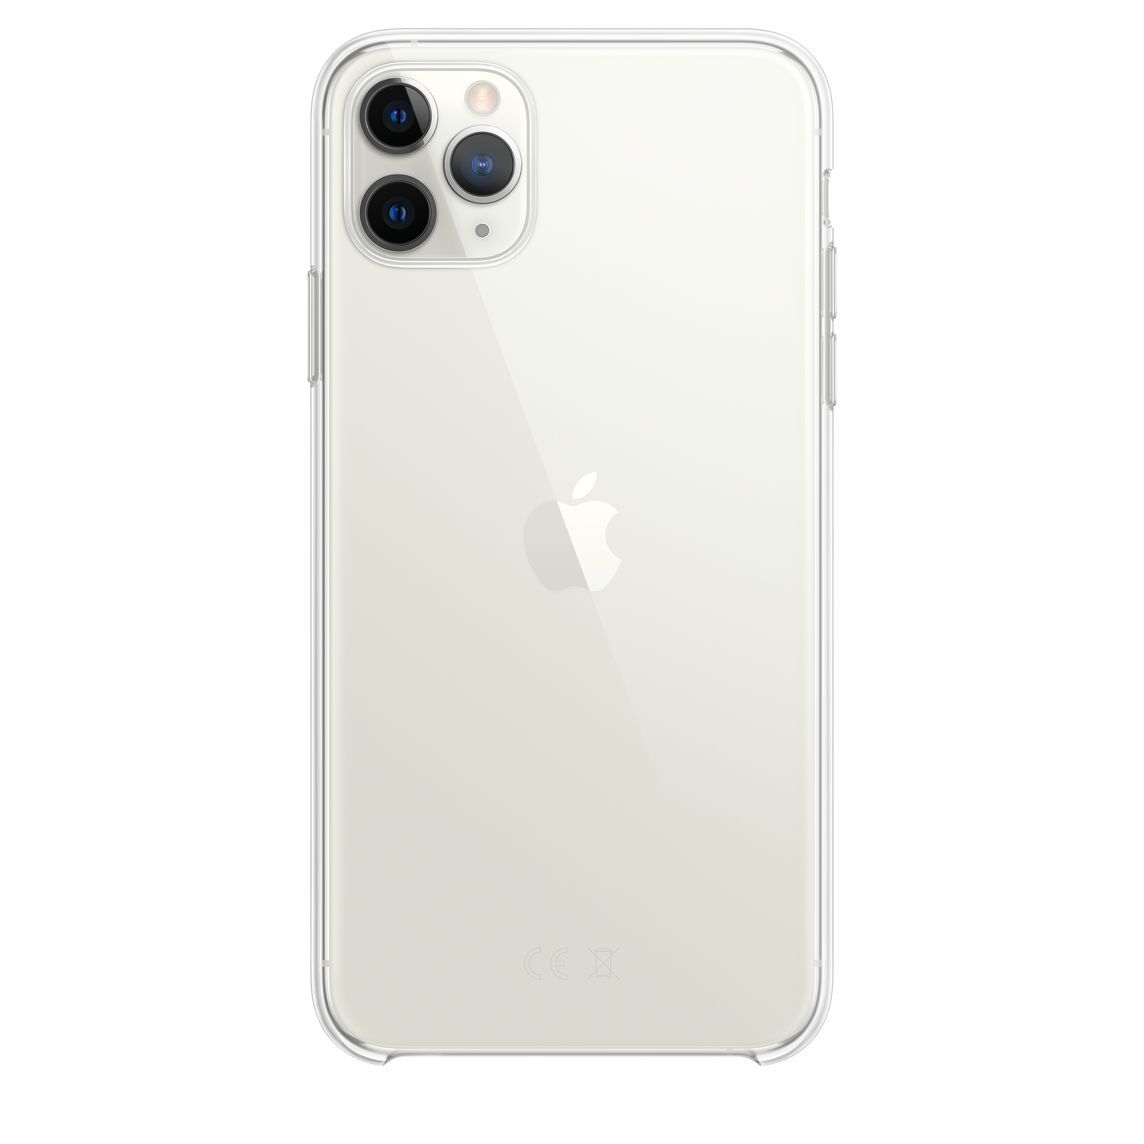 Apple iPhone 11 Pro Max Clear Case (Damaged Box)